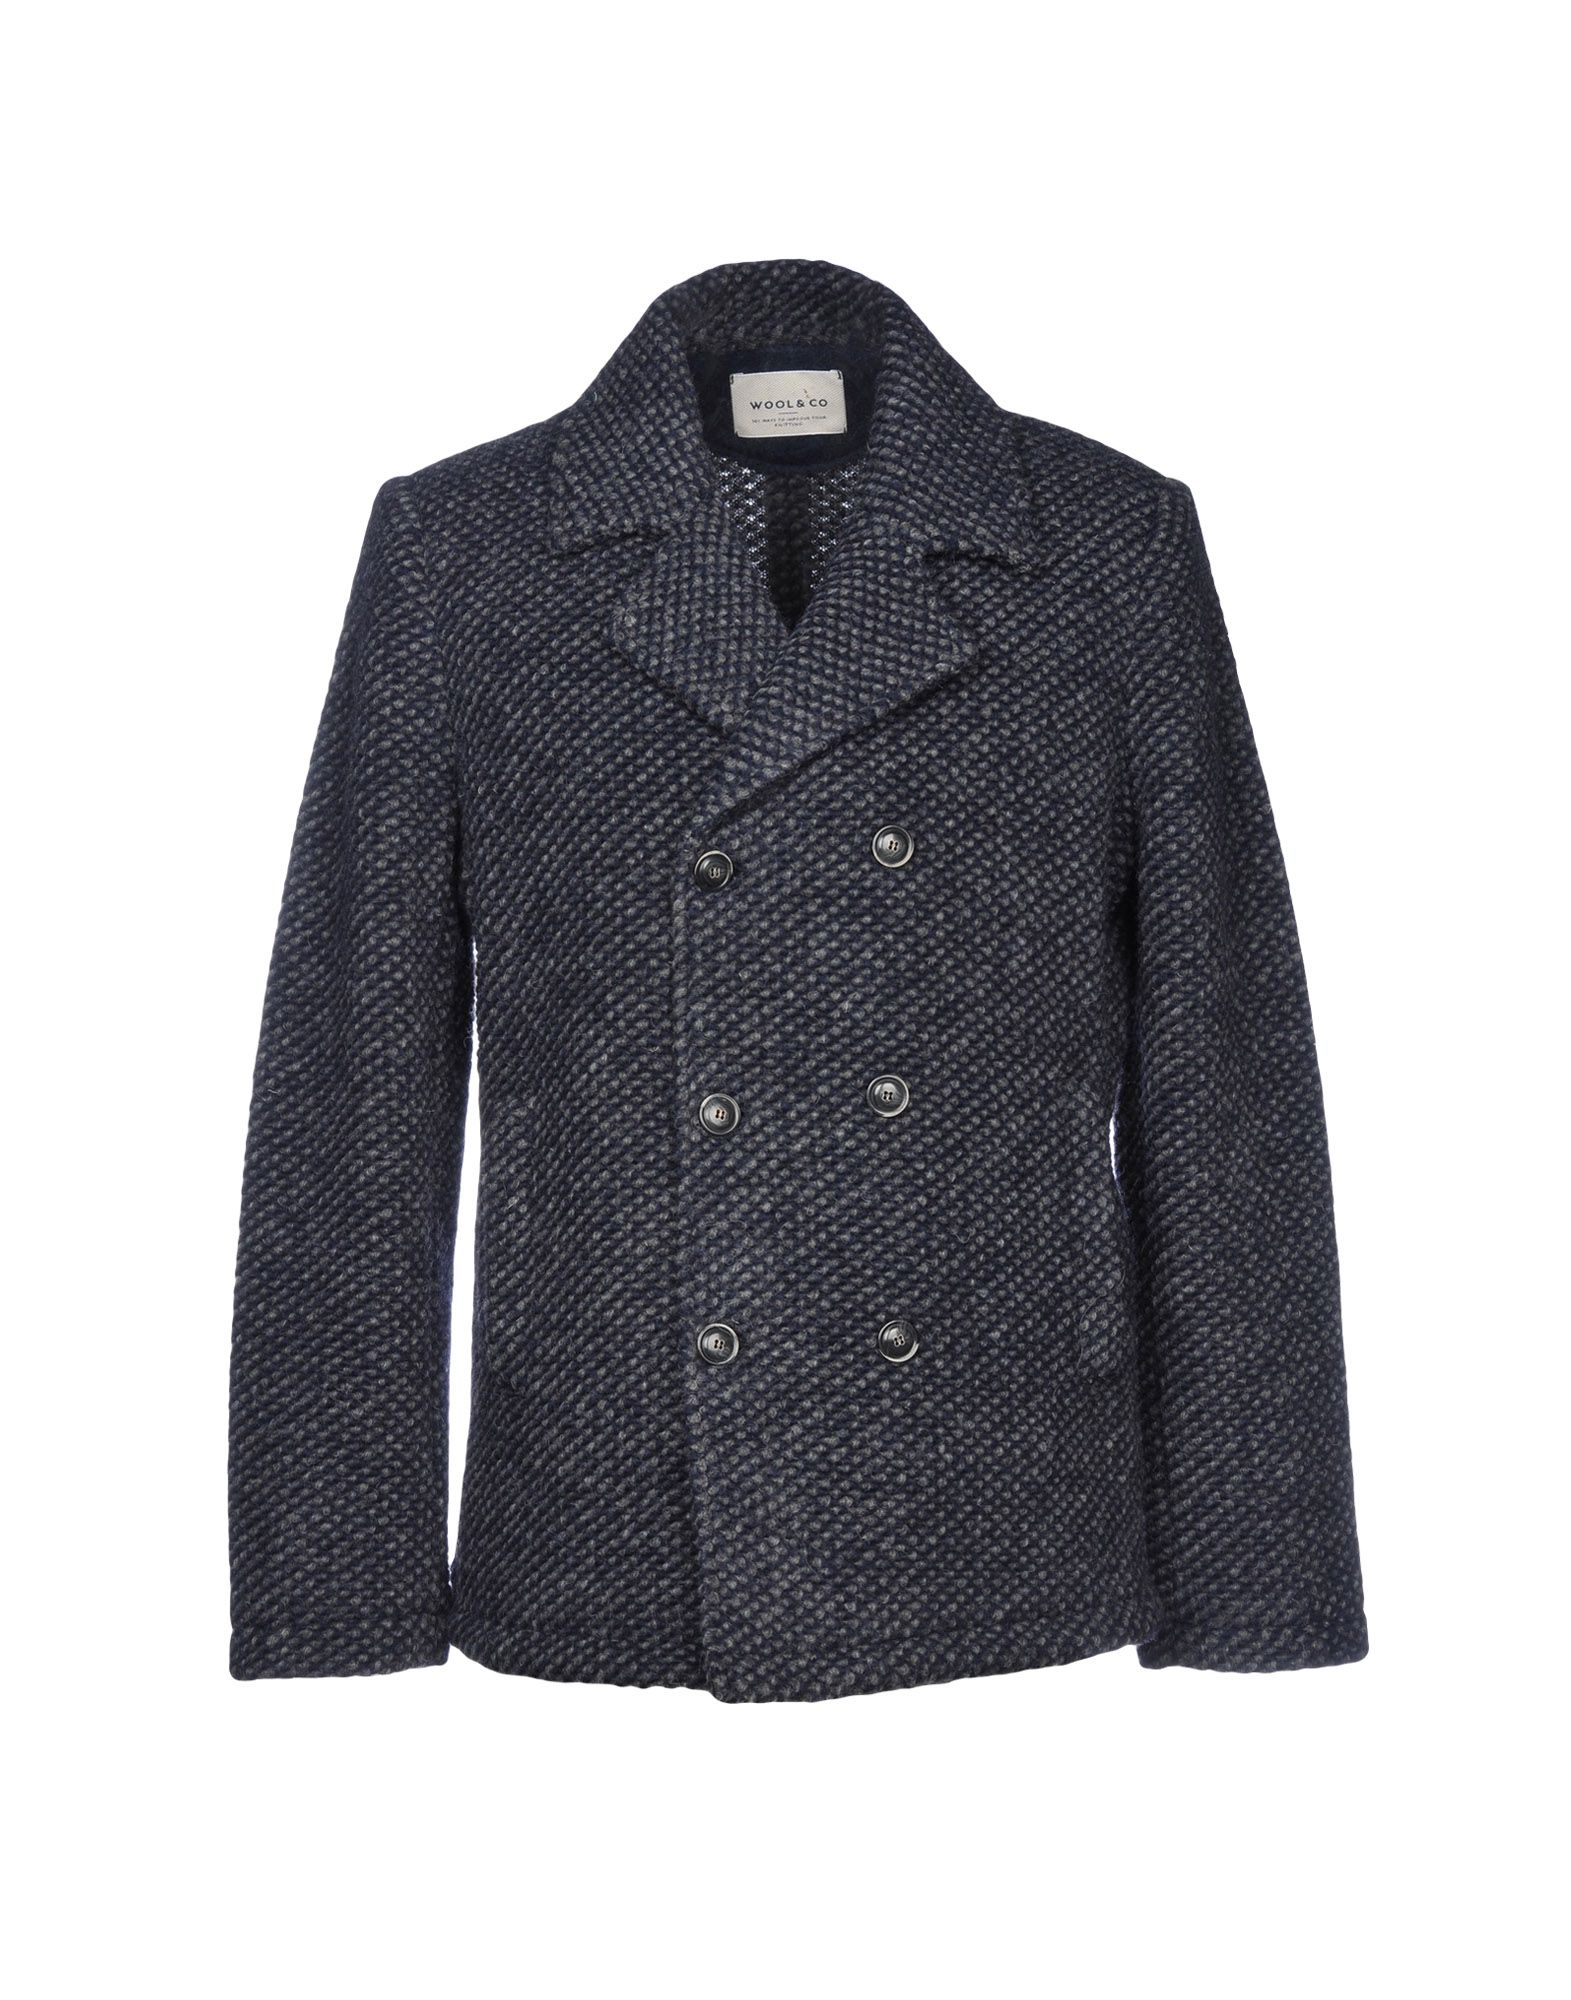 Giacca Wool & Co Donna - Acquista online su